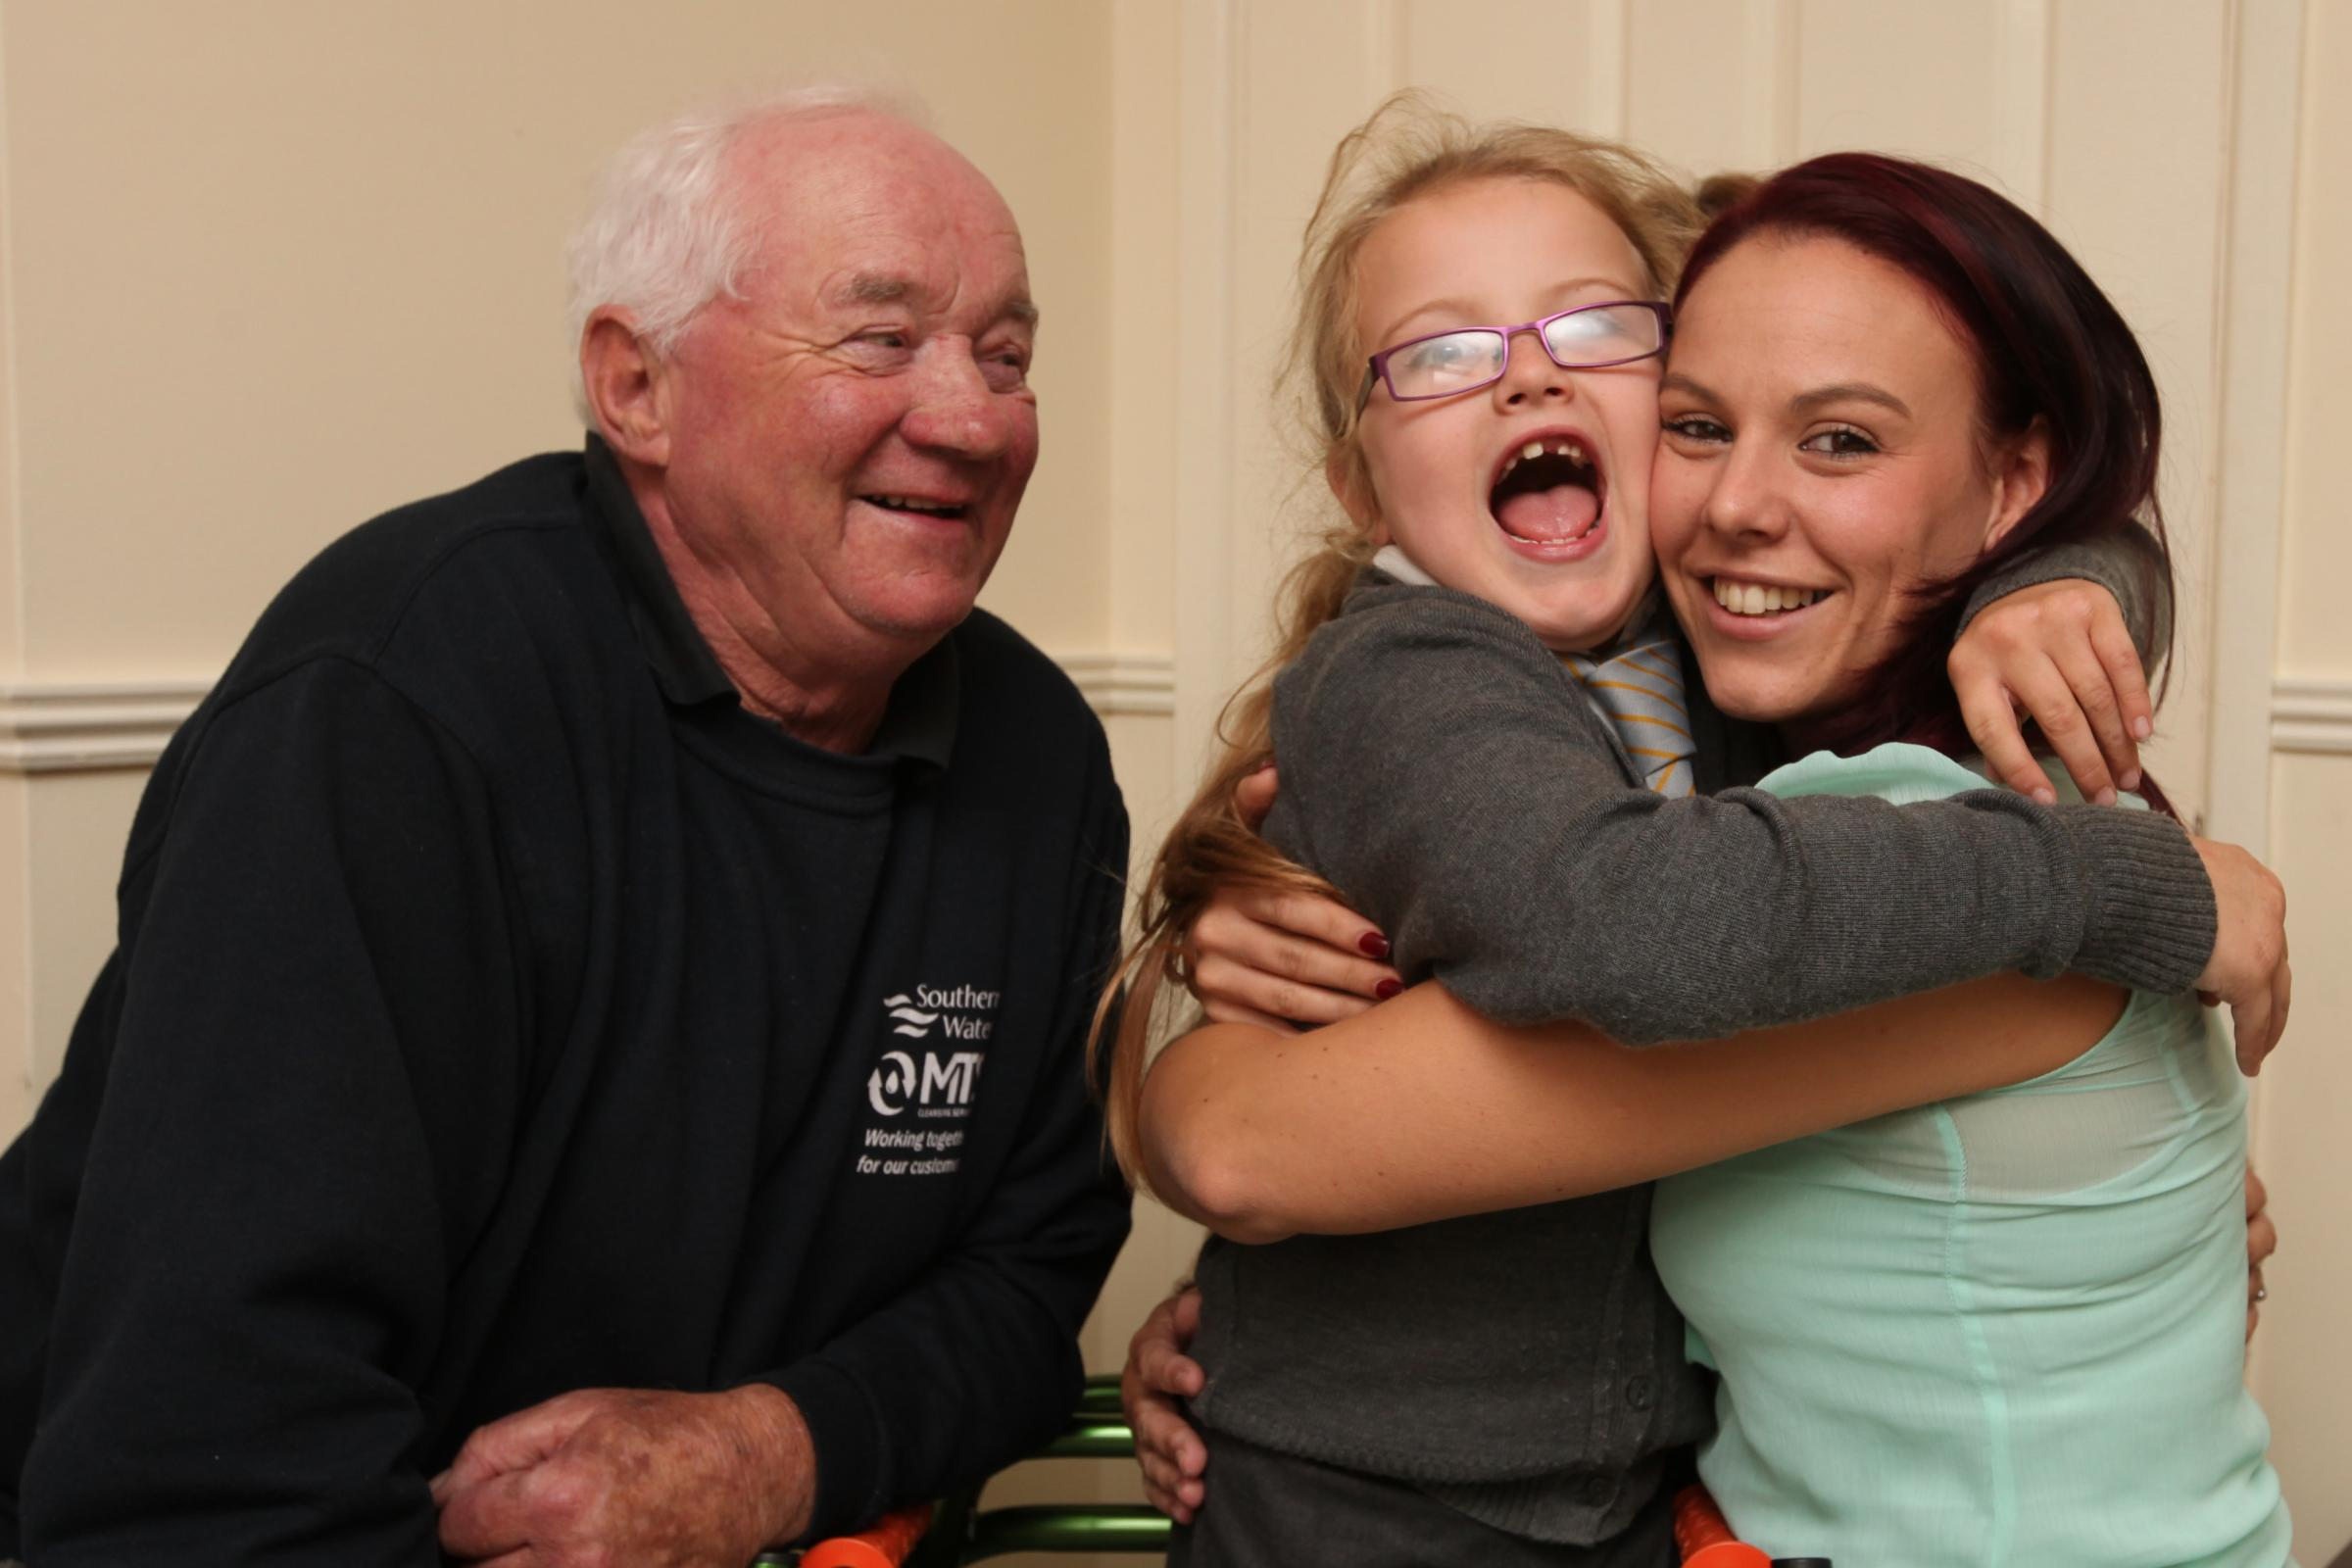 Keeley with her mum, Zara Cullen, and her grandad, Barry Cullen.